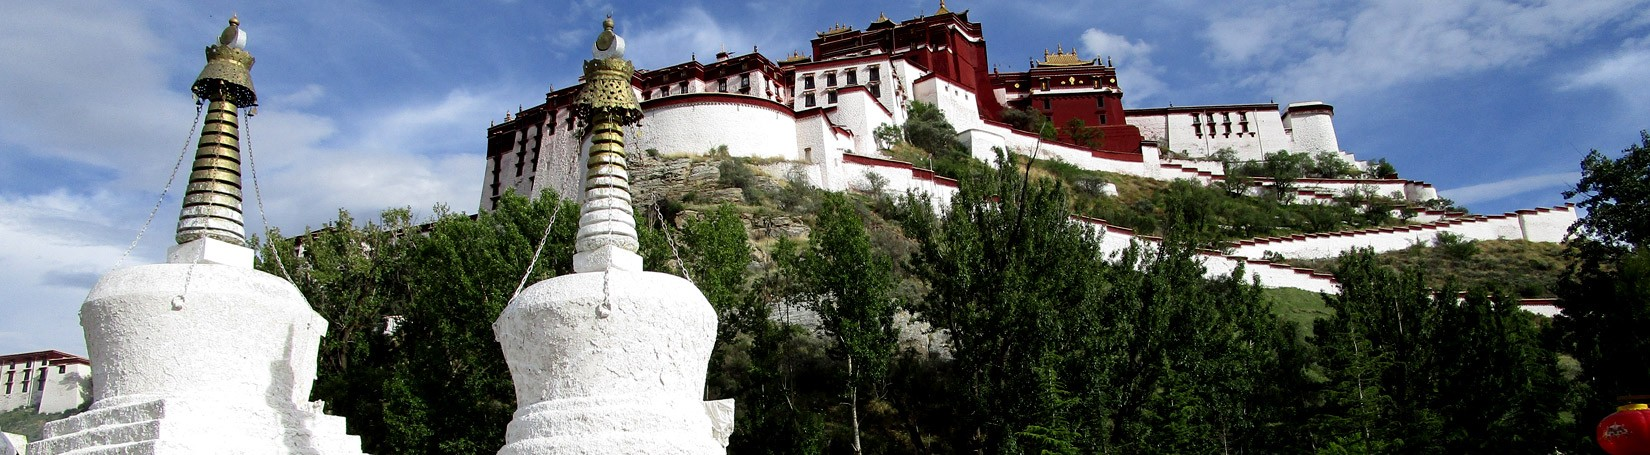 View of Potala Palace in Lhasa